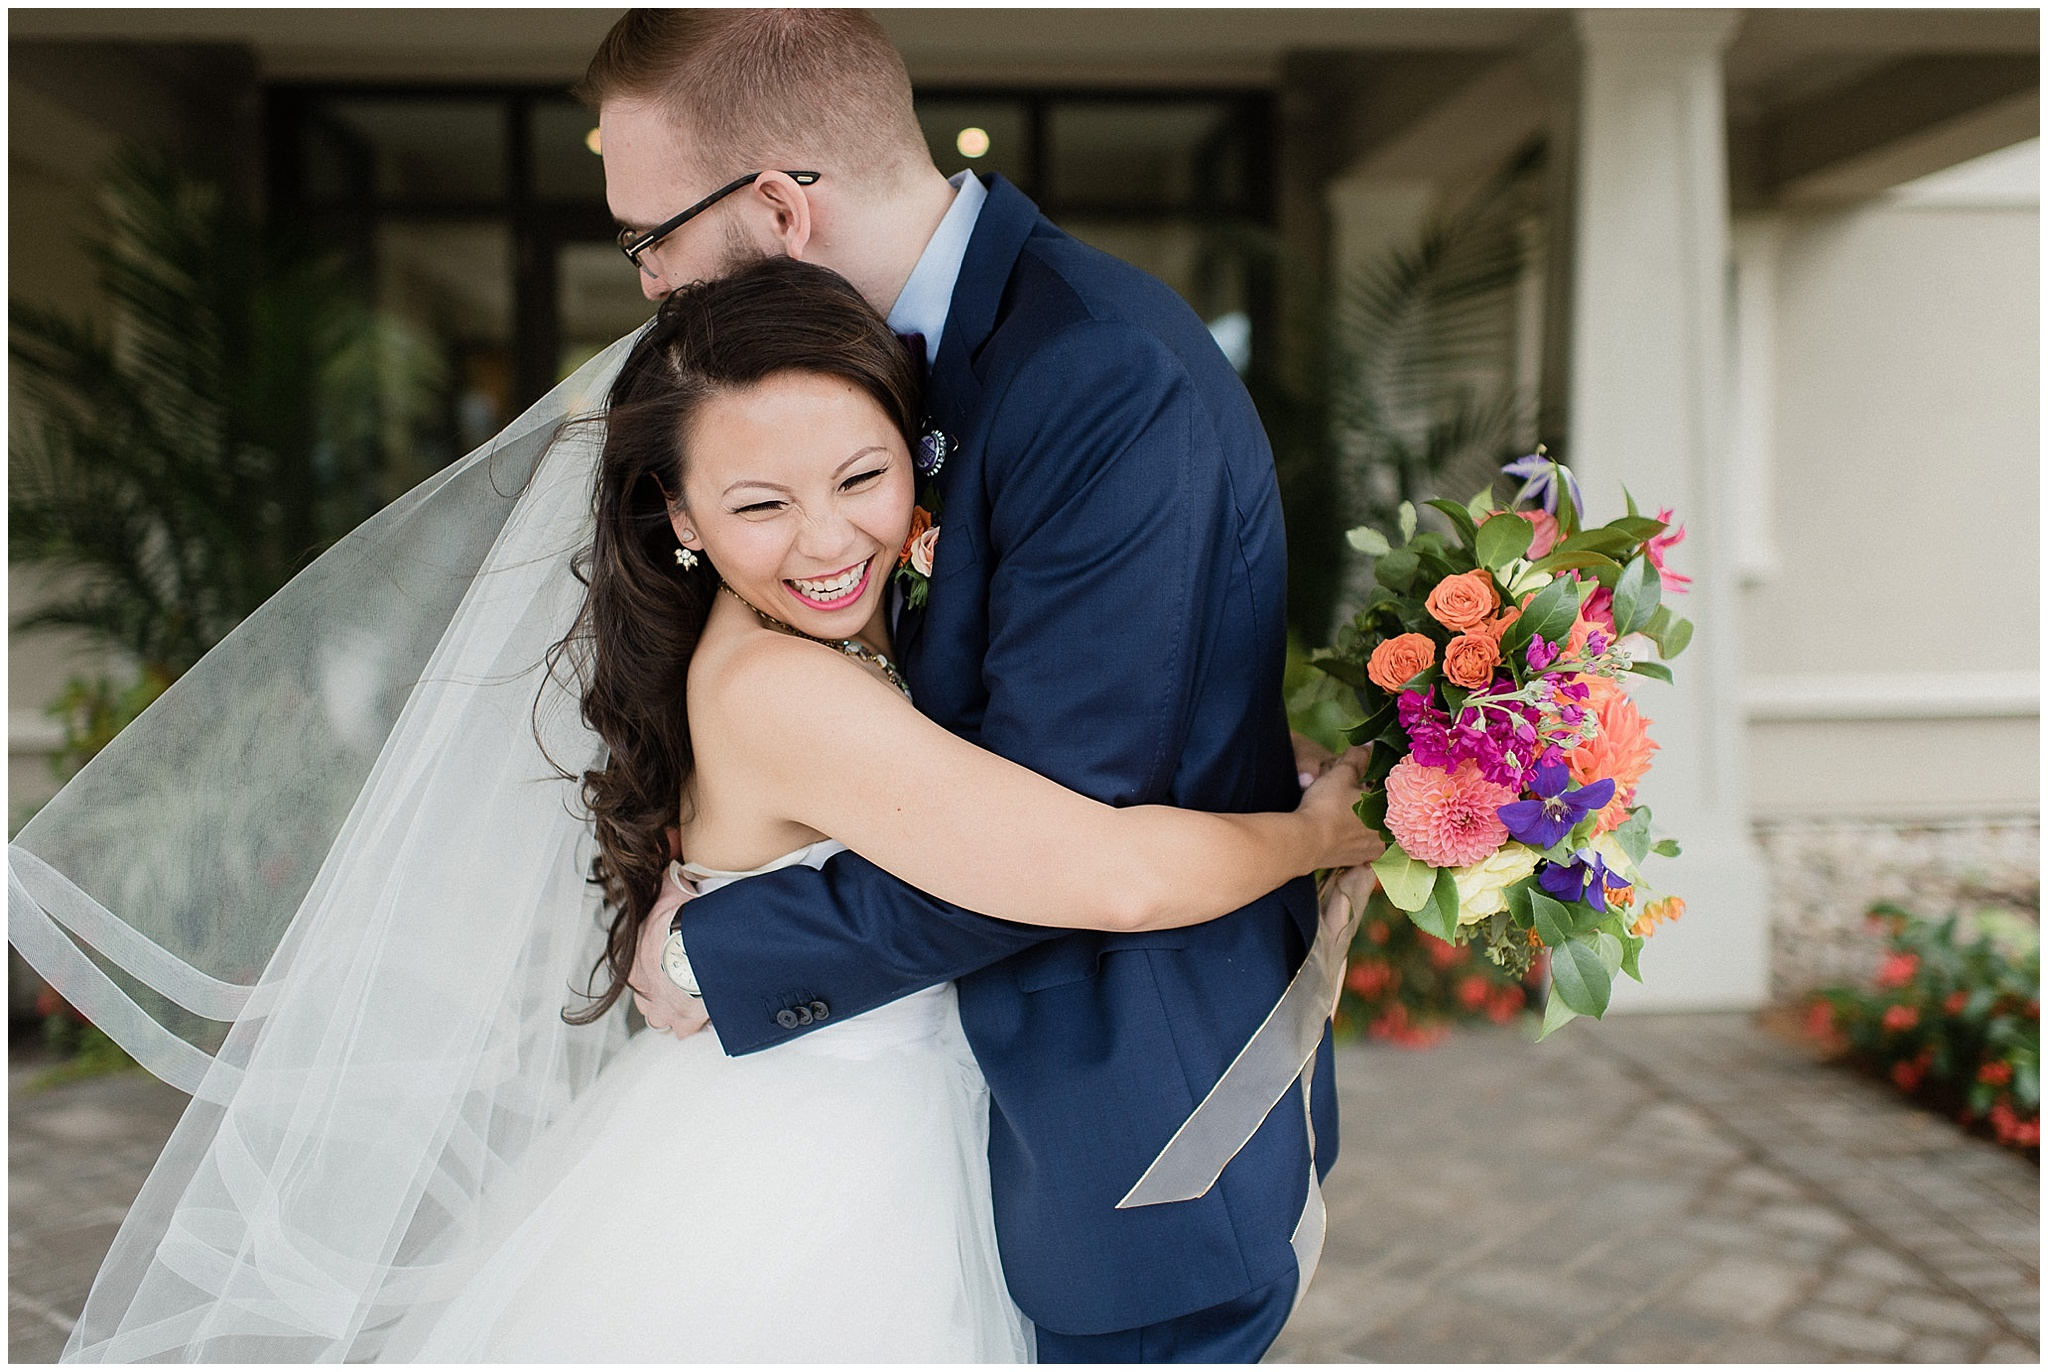 Markland Wood Golf Club wedding photographed by Jenn Kavanagh Photography